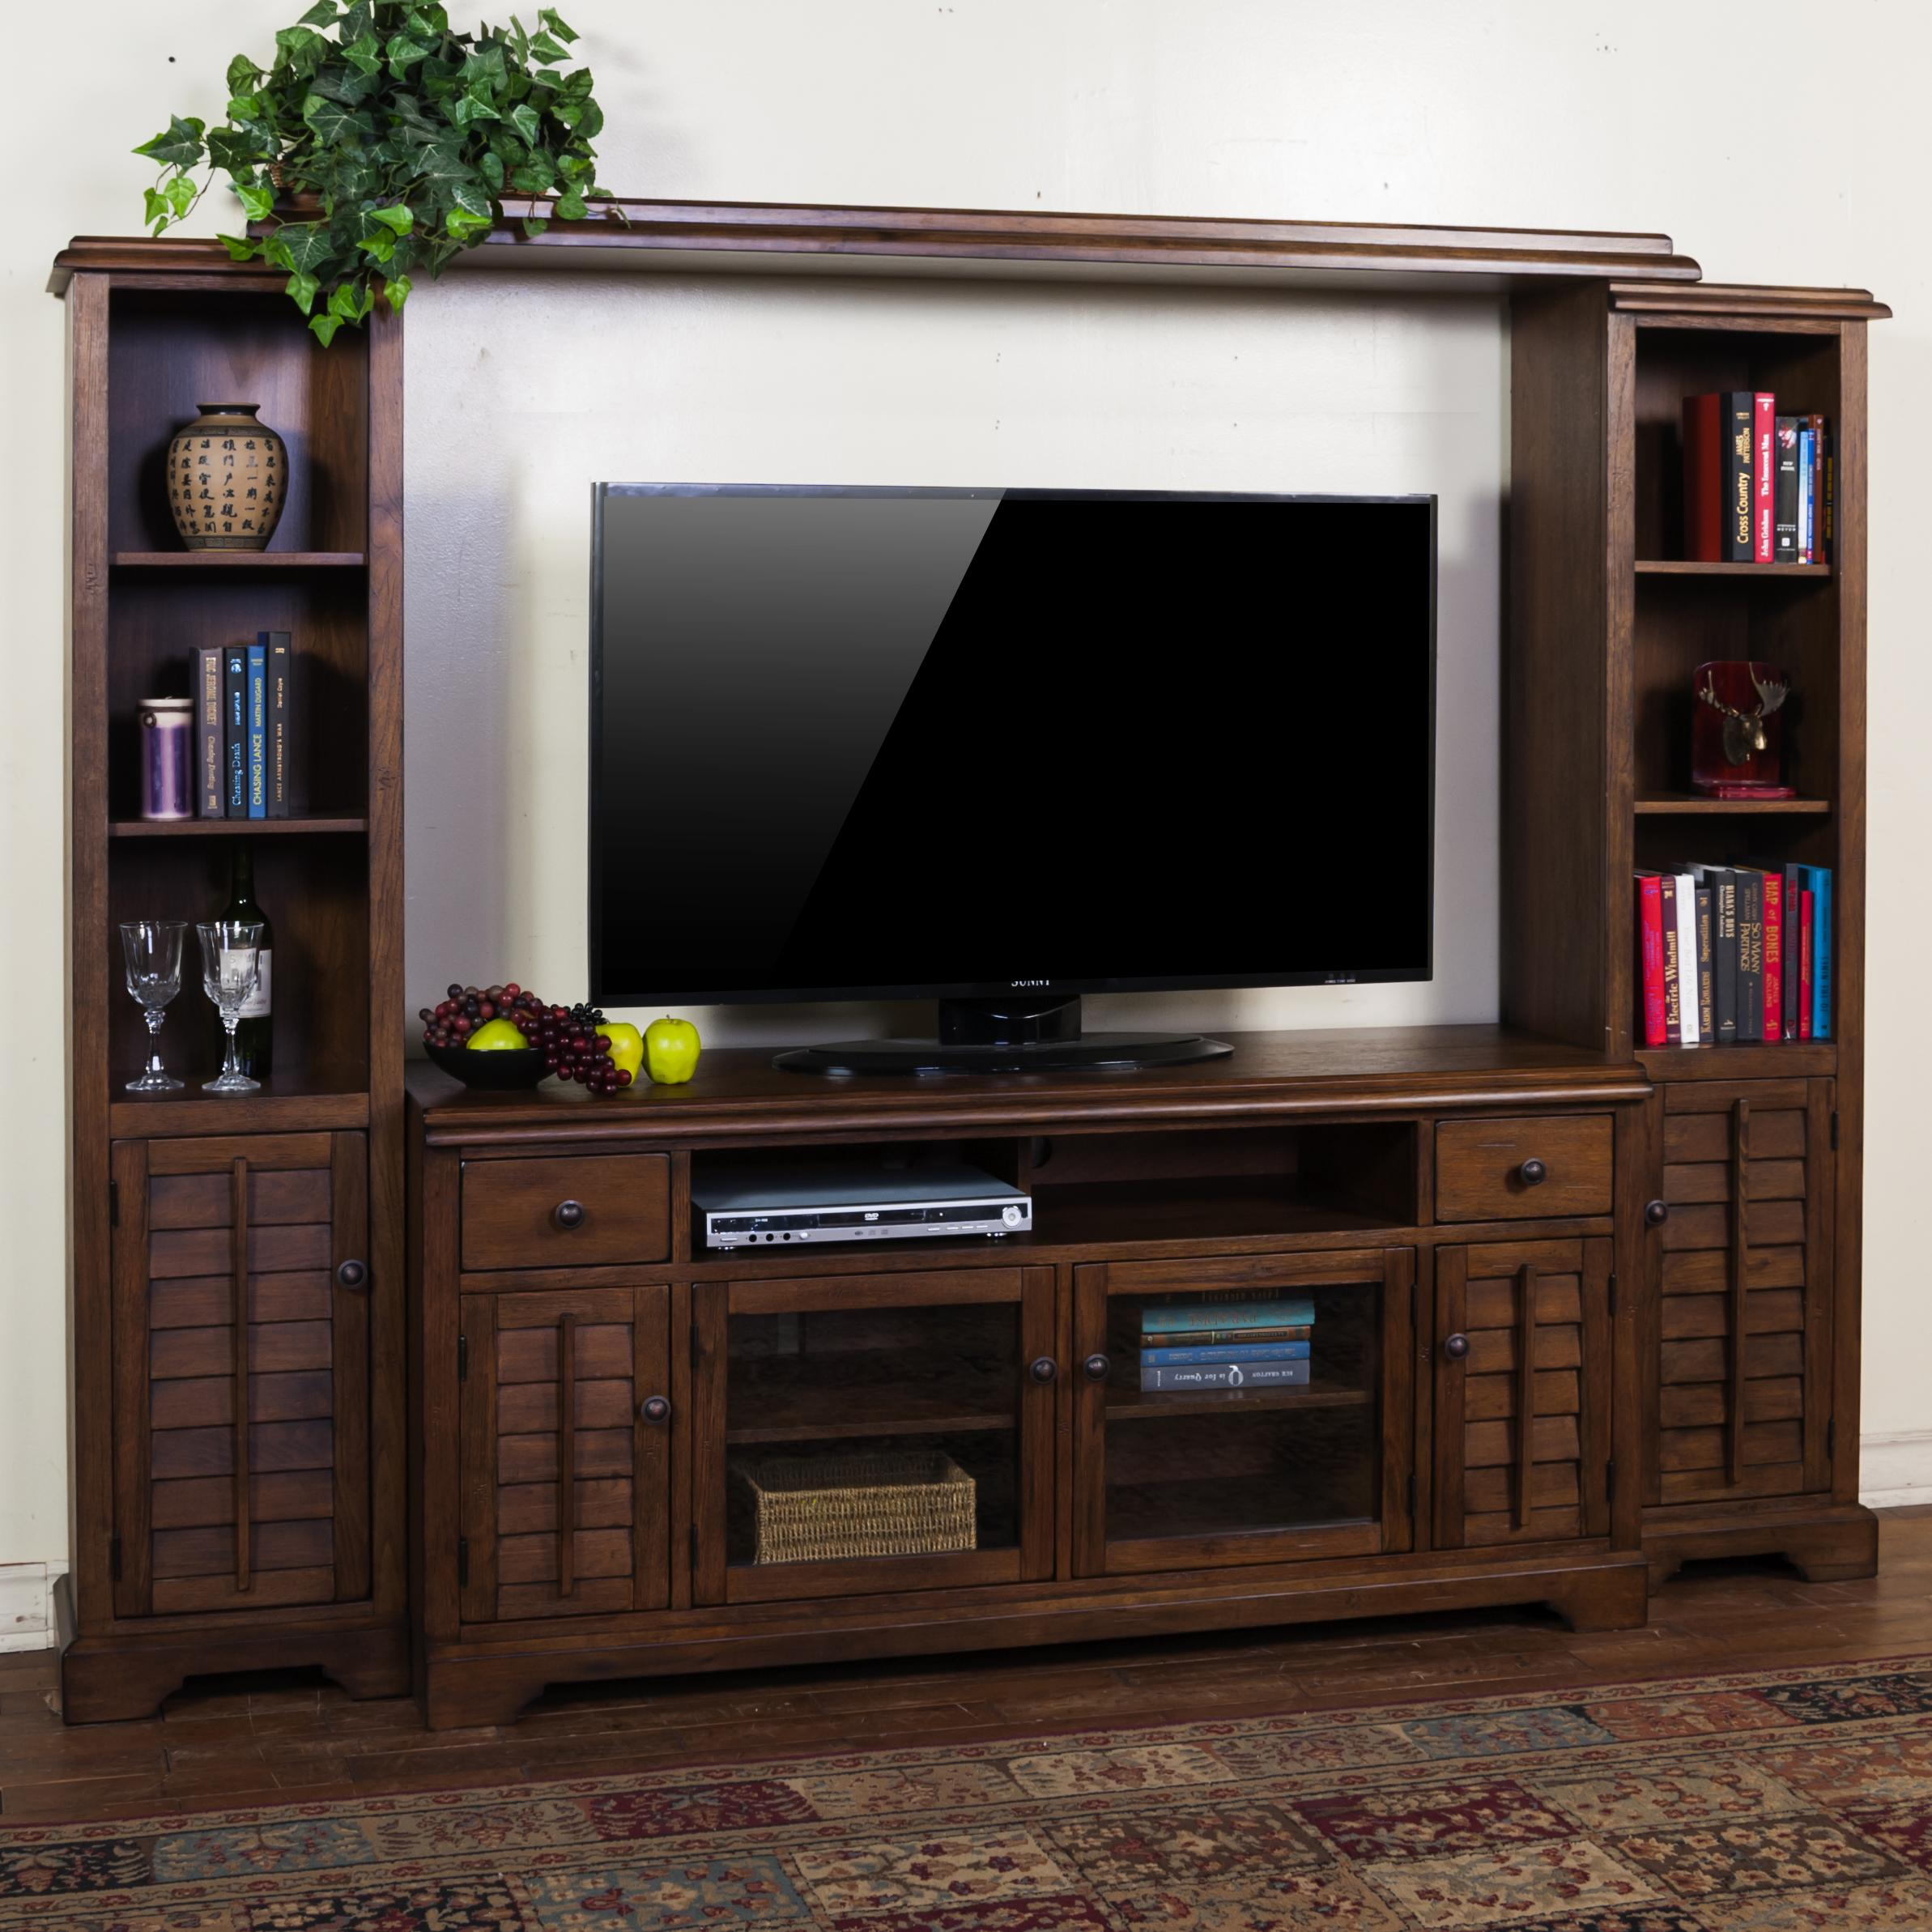 Entertainment wall unit w 65 w tv console by sunny Wall tv console design